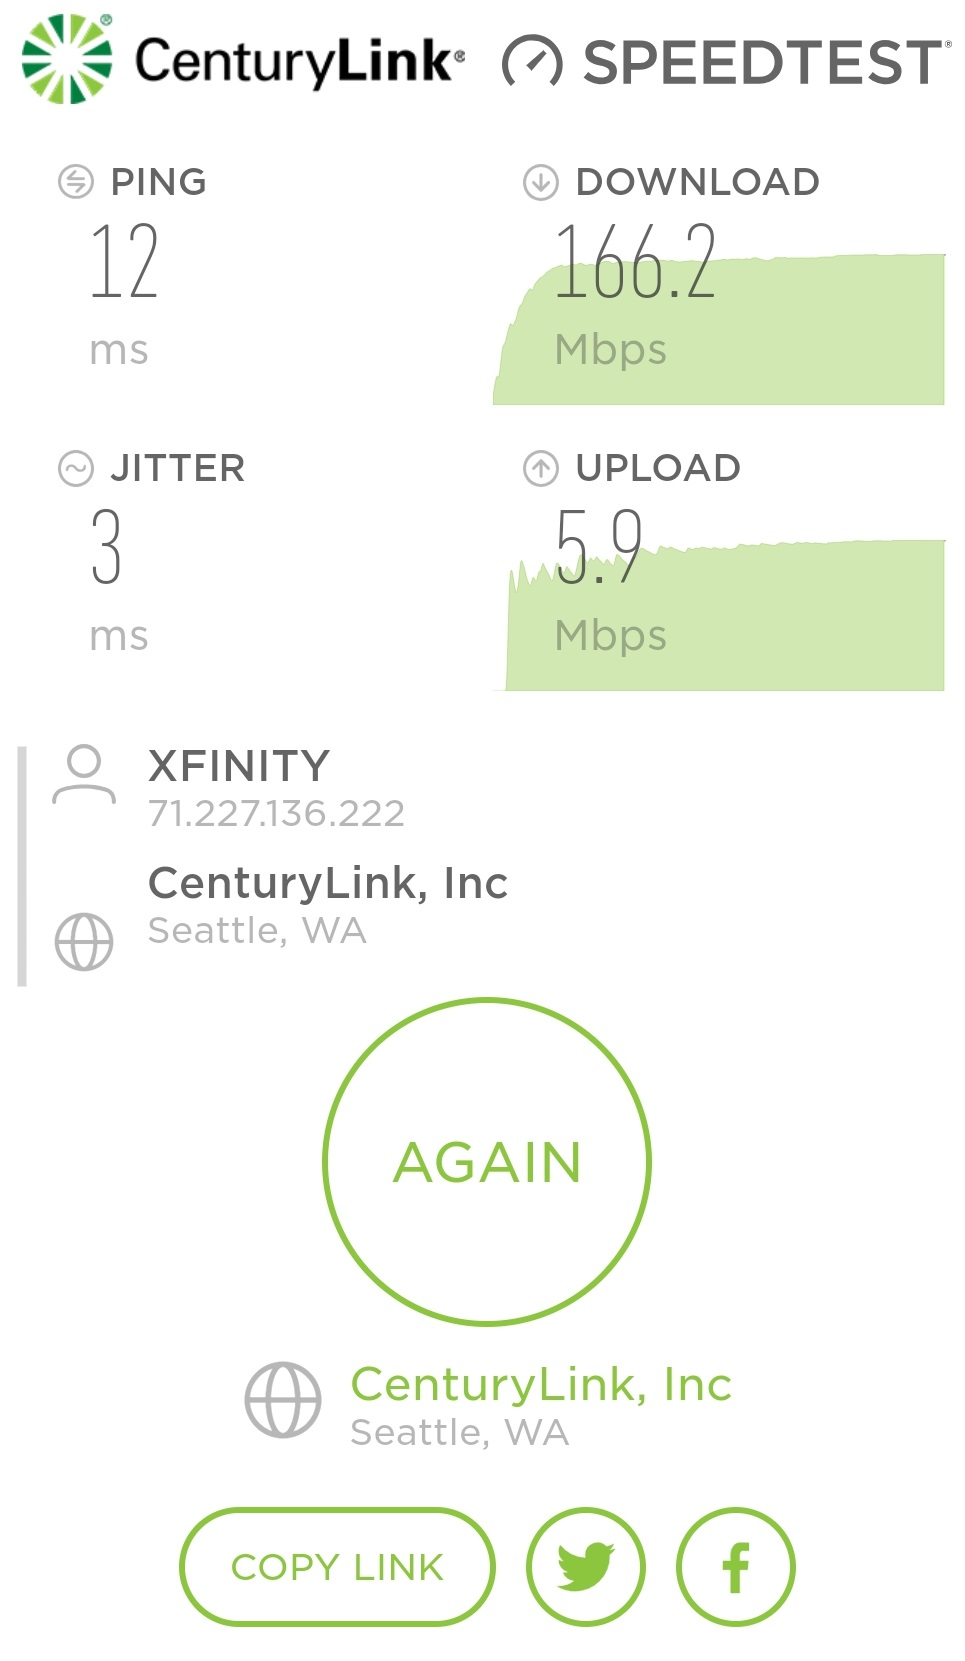 CenturyLink Speed Test Review